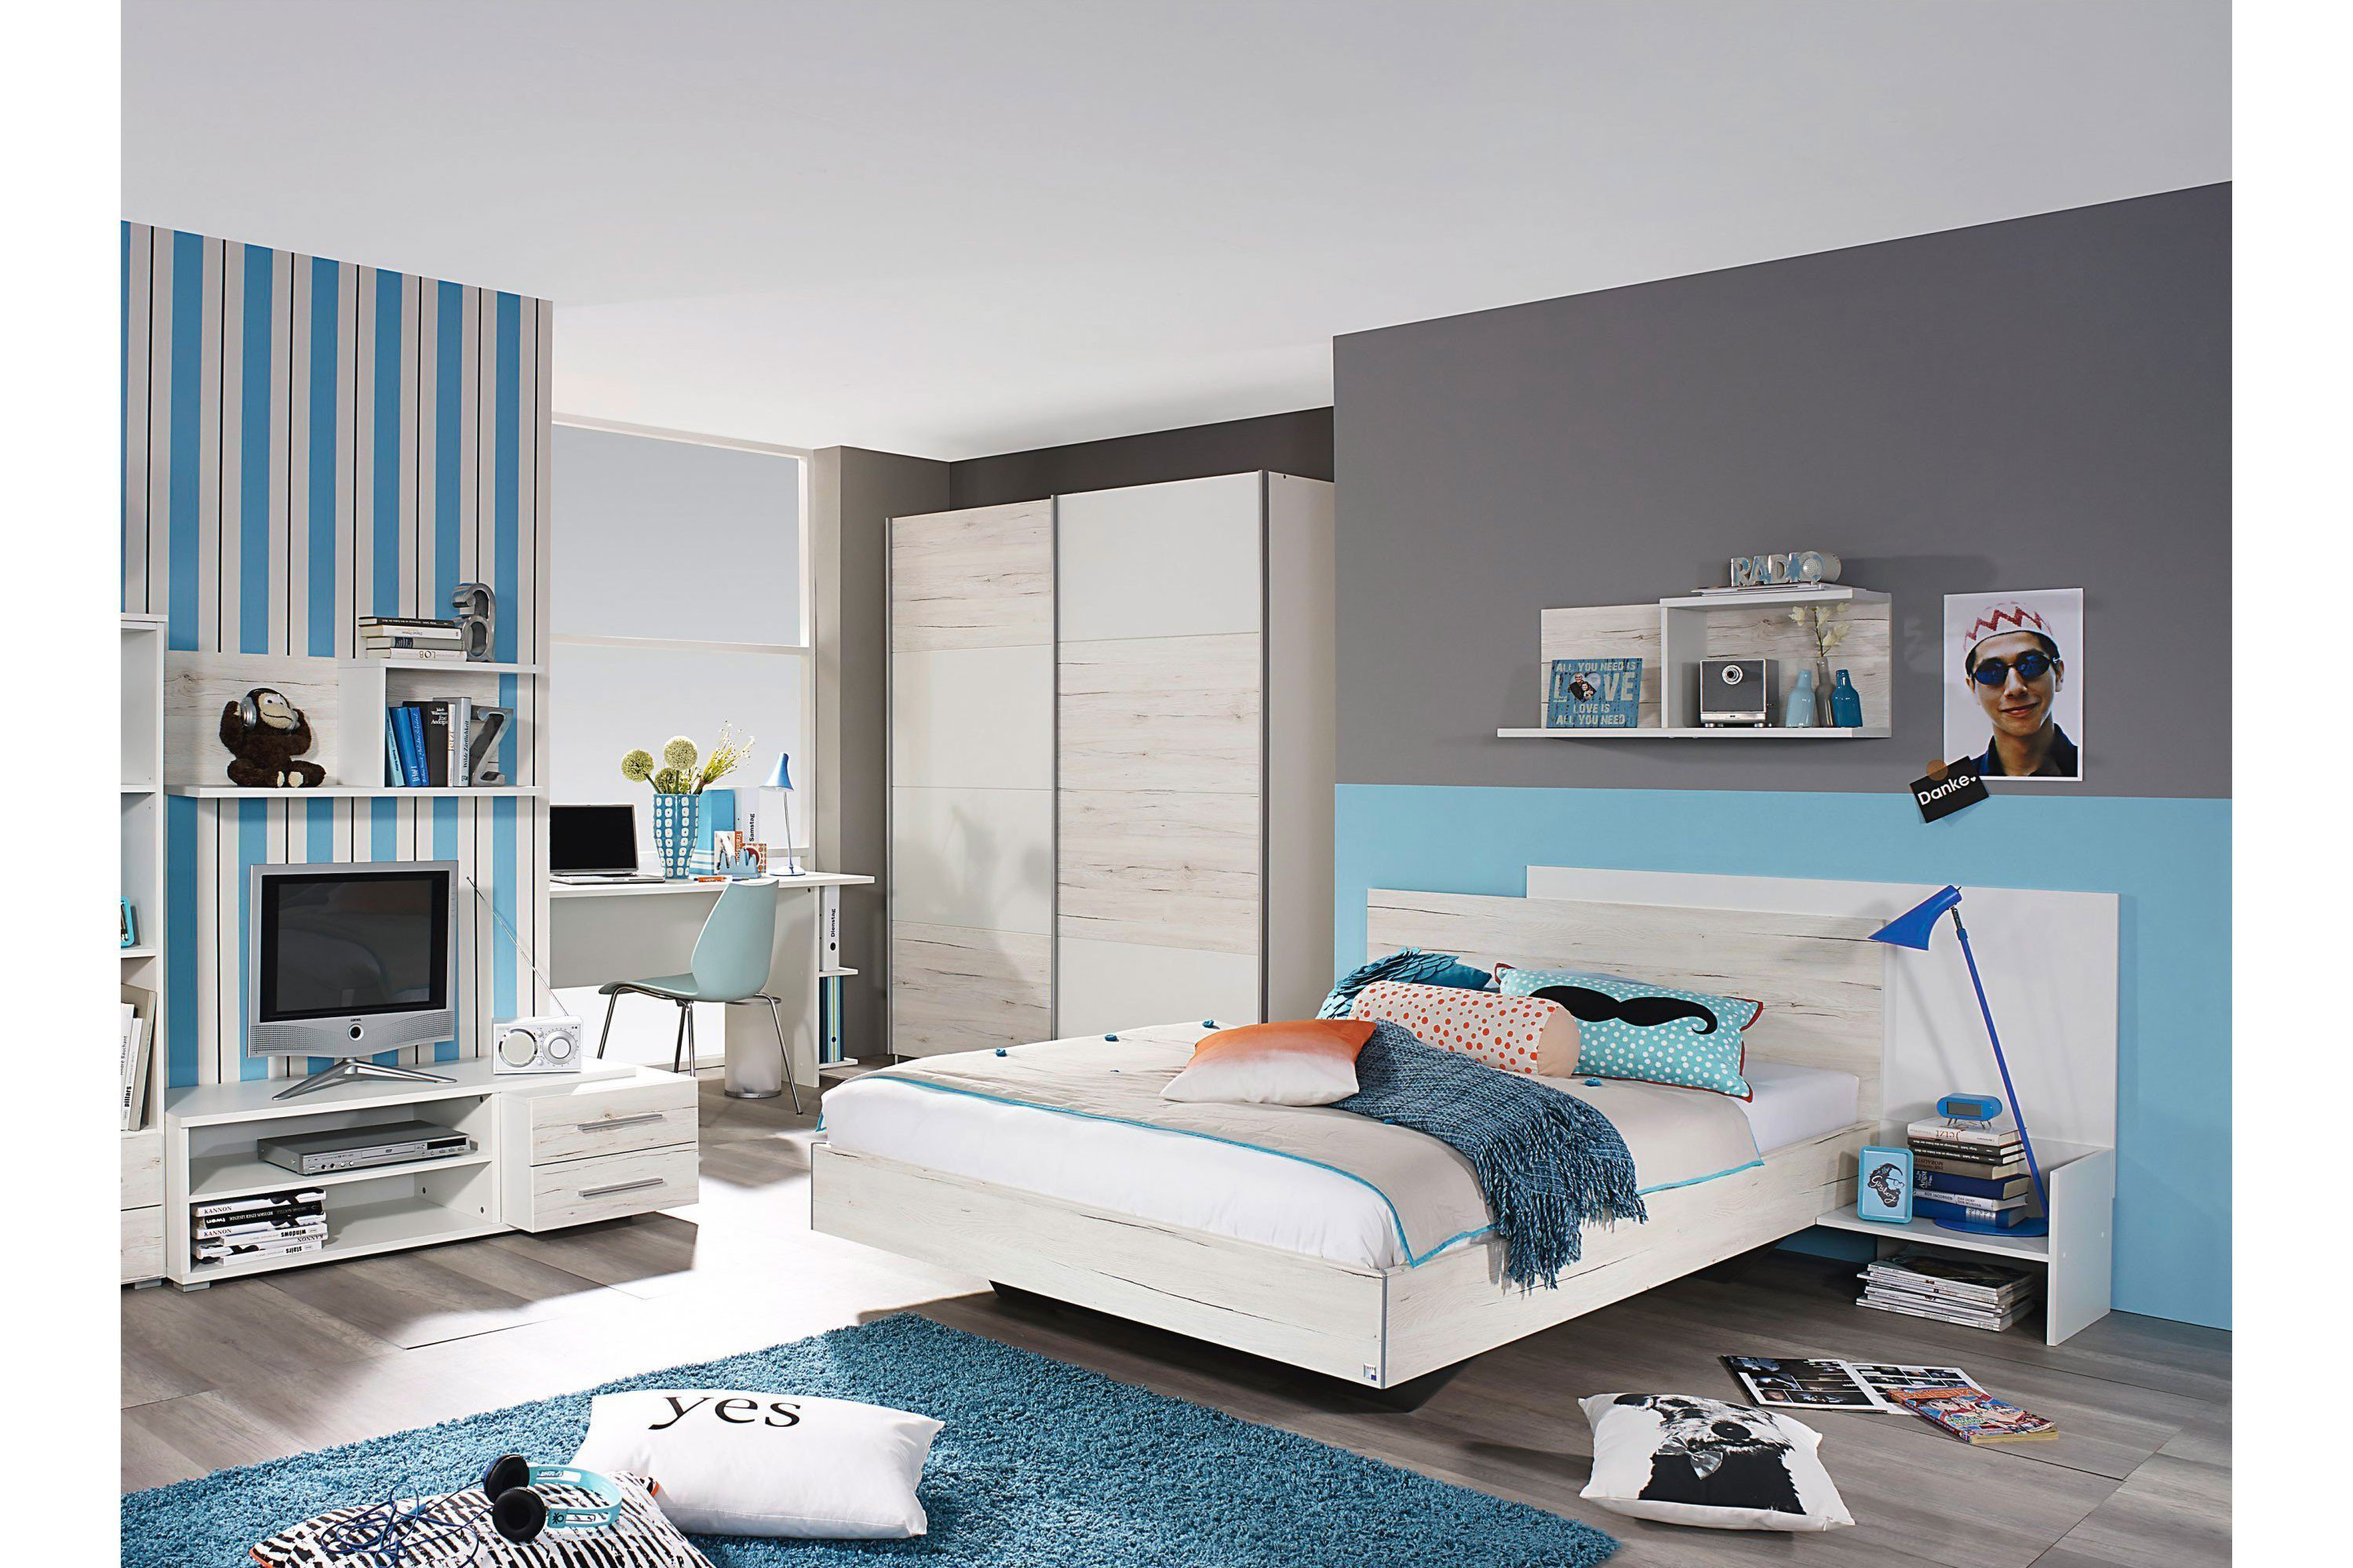 rauch broome jugendzimmer wei eiche m bel letz ihr online shop. Black Bedroom Furniture Sets. Home Design Ideas